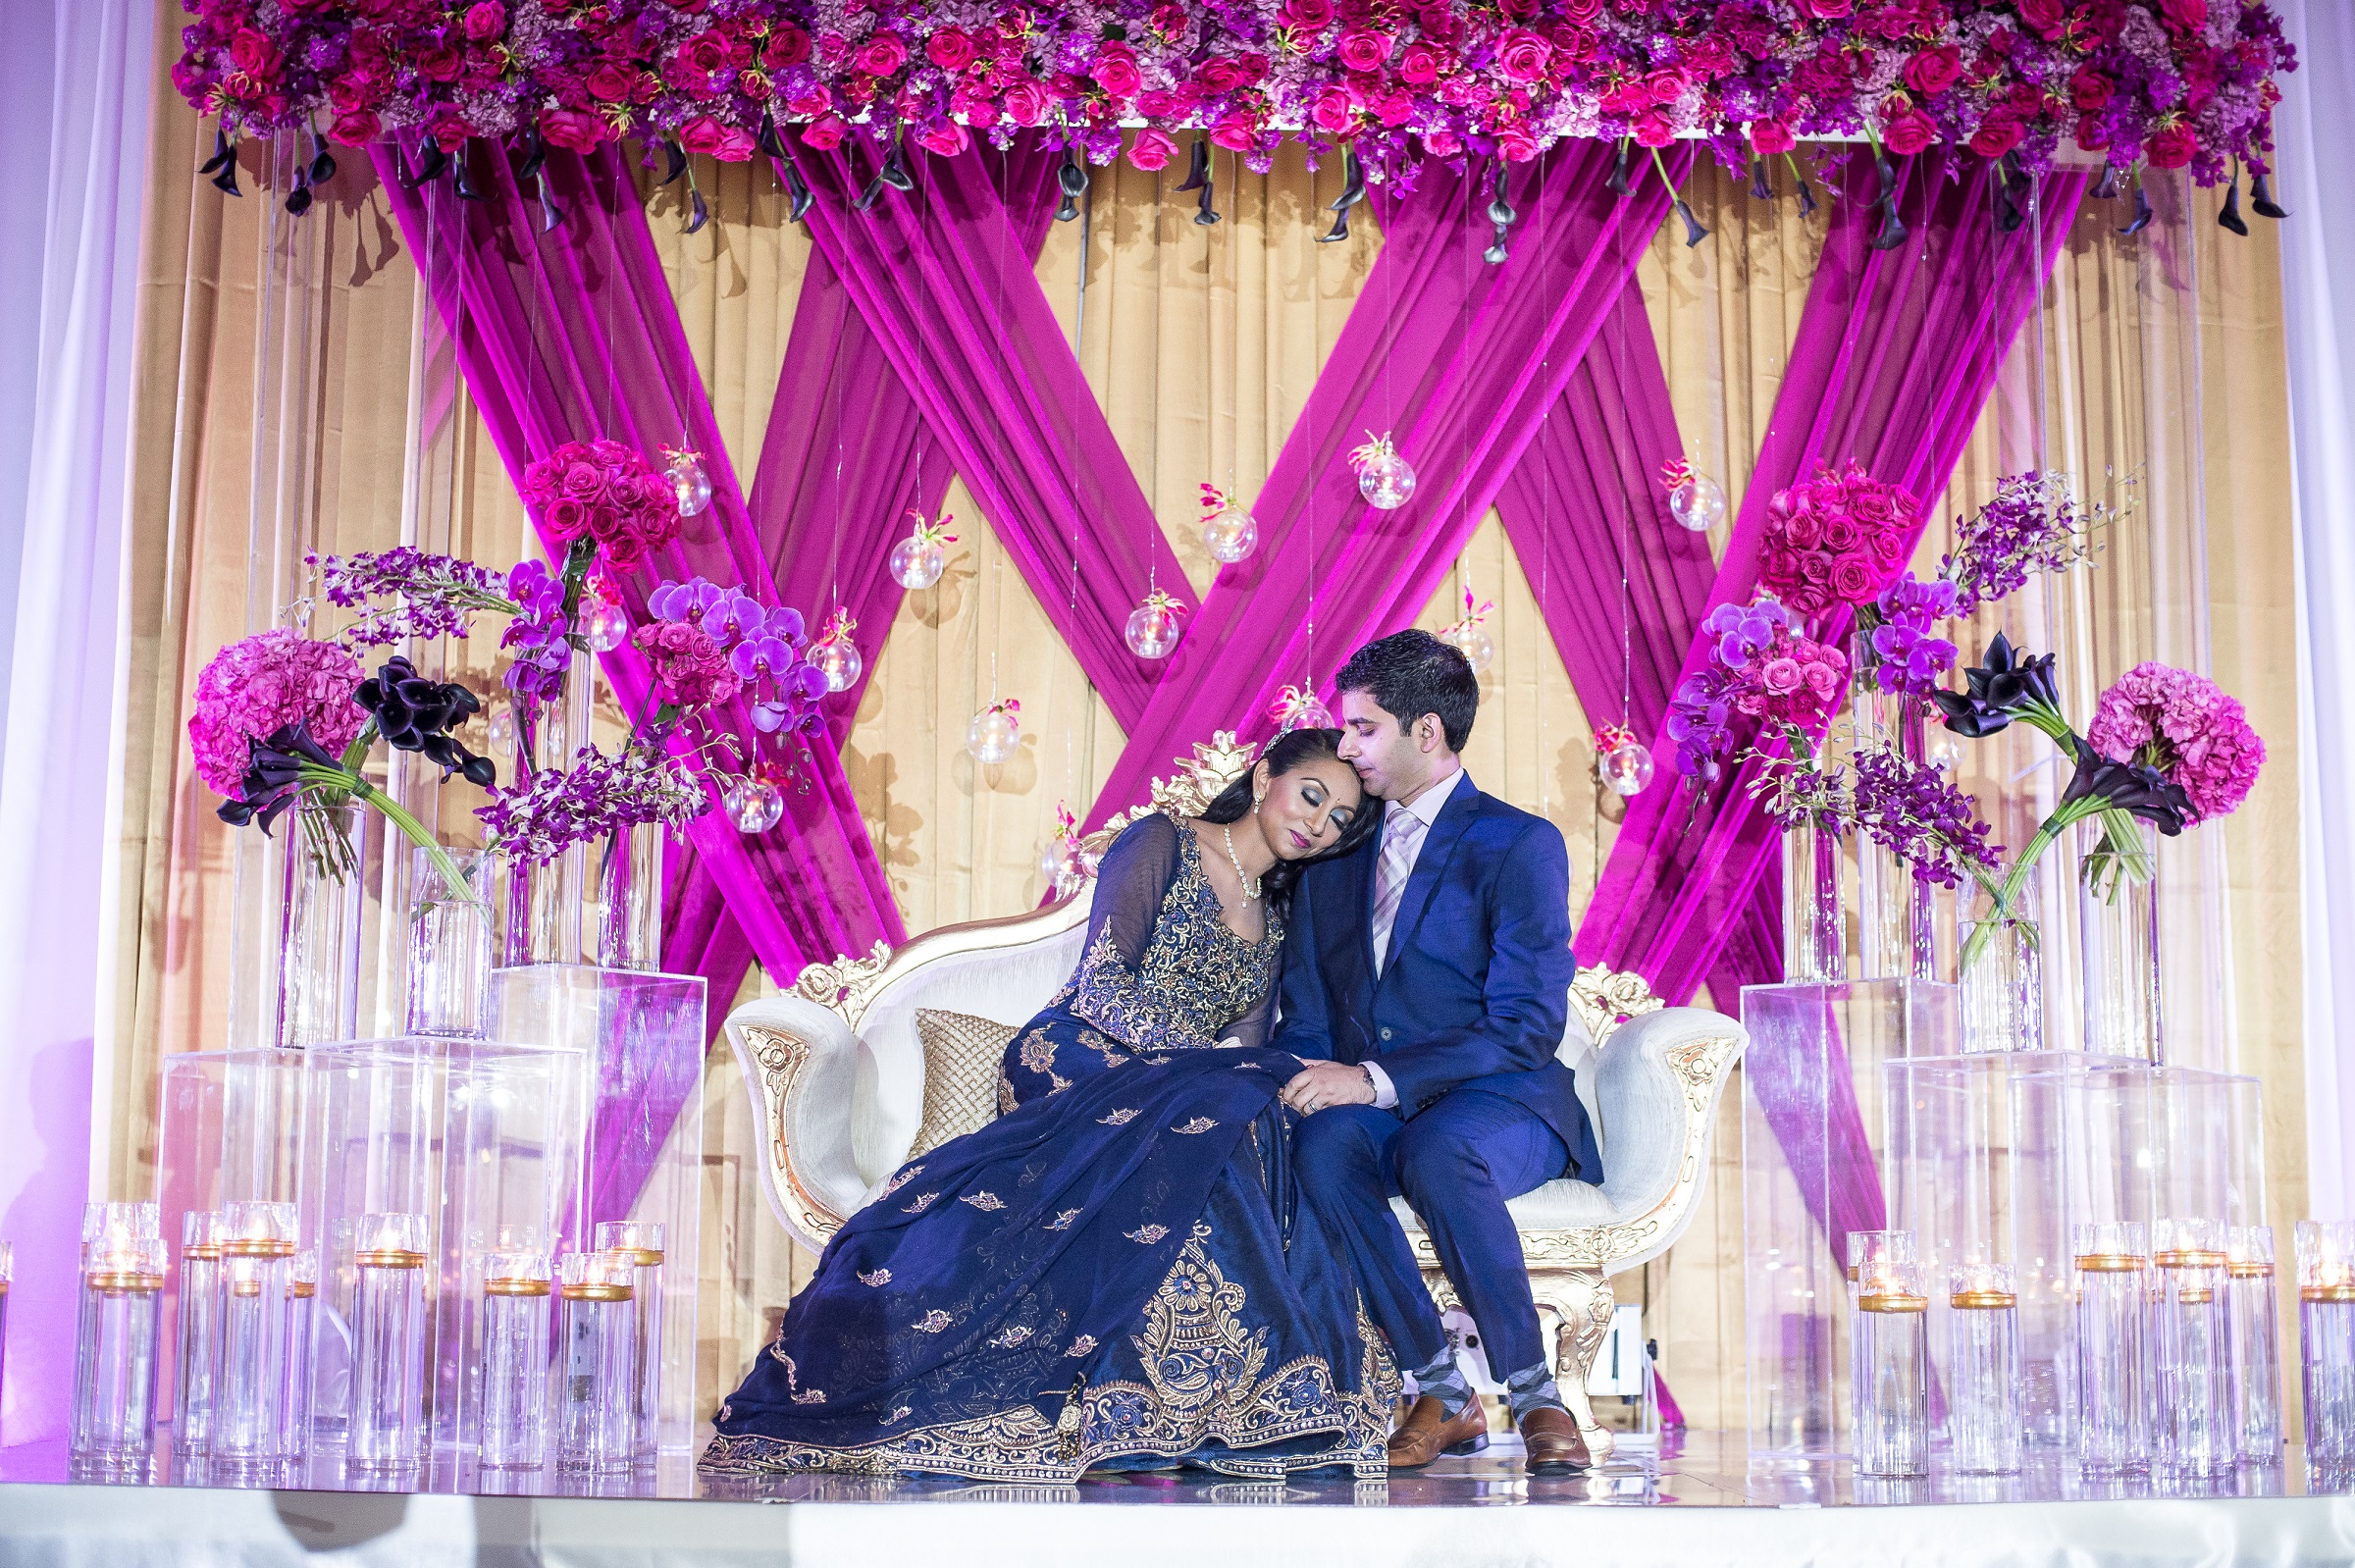 BRIDE LEANING ON GROOM IN FRONT OF BACKDROP